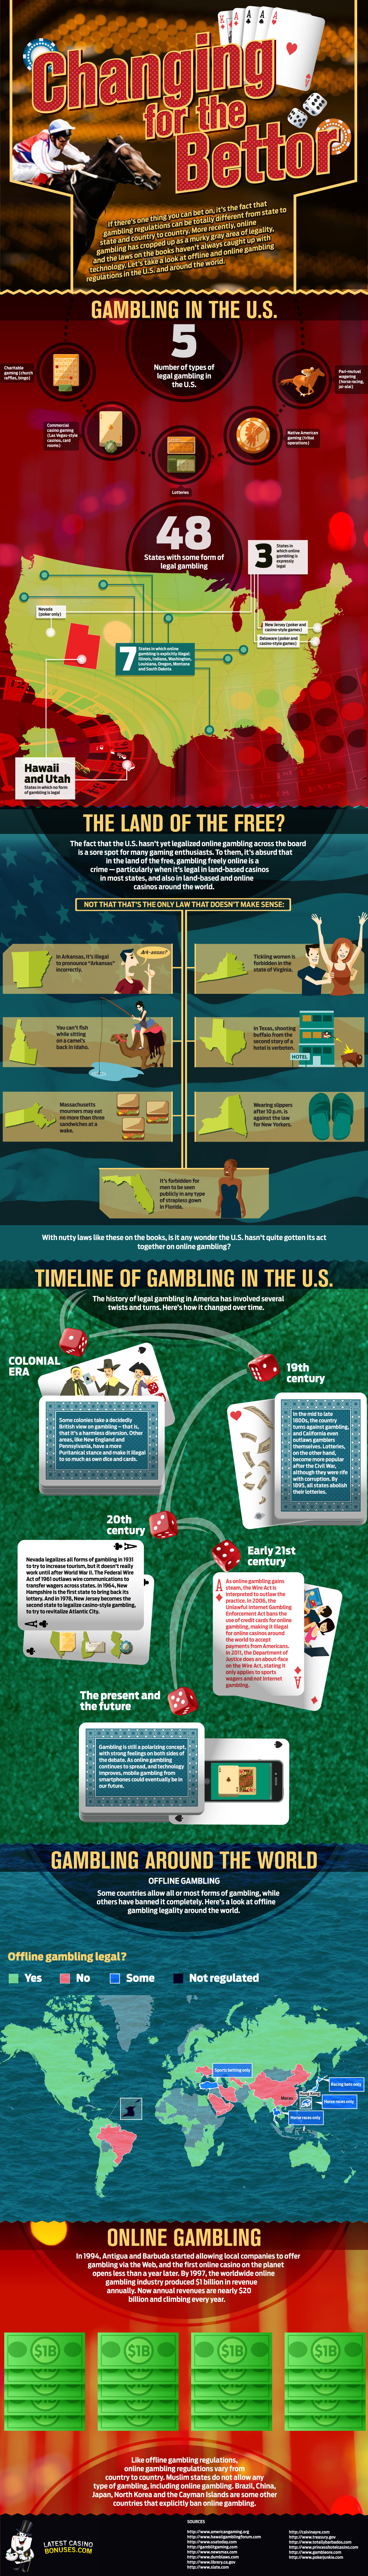 Gambling in the US infographic